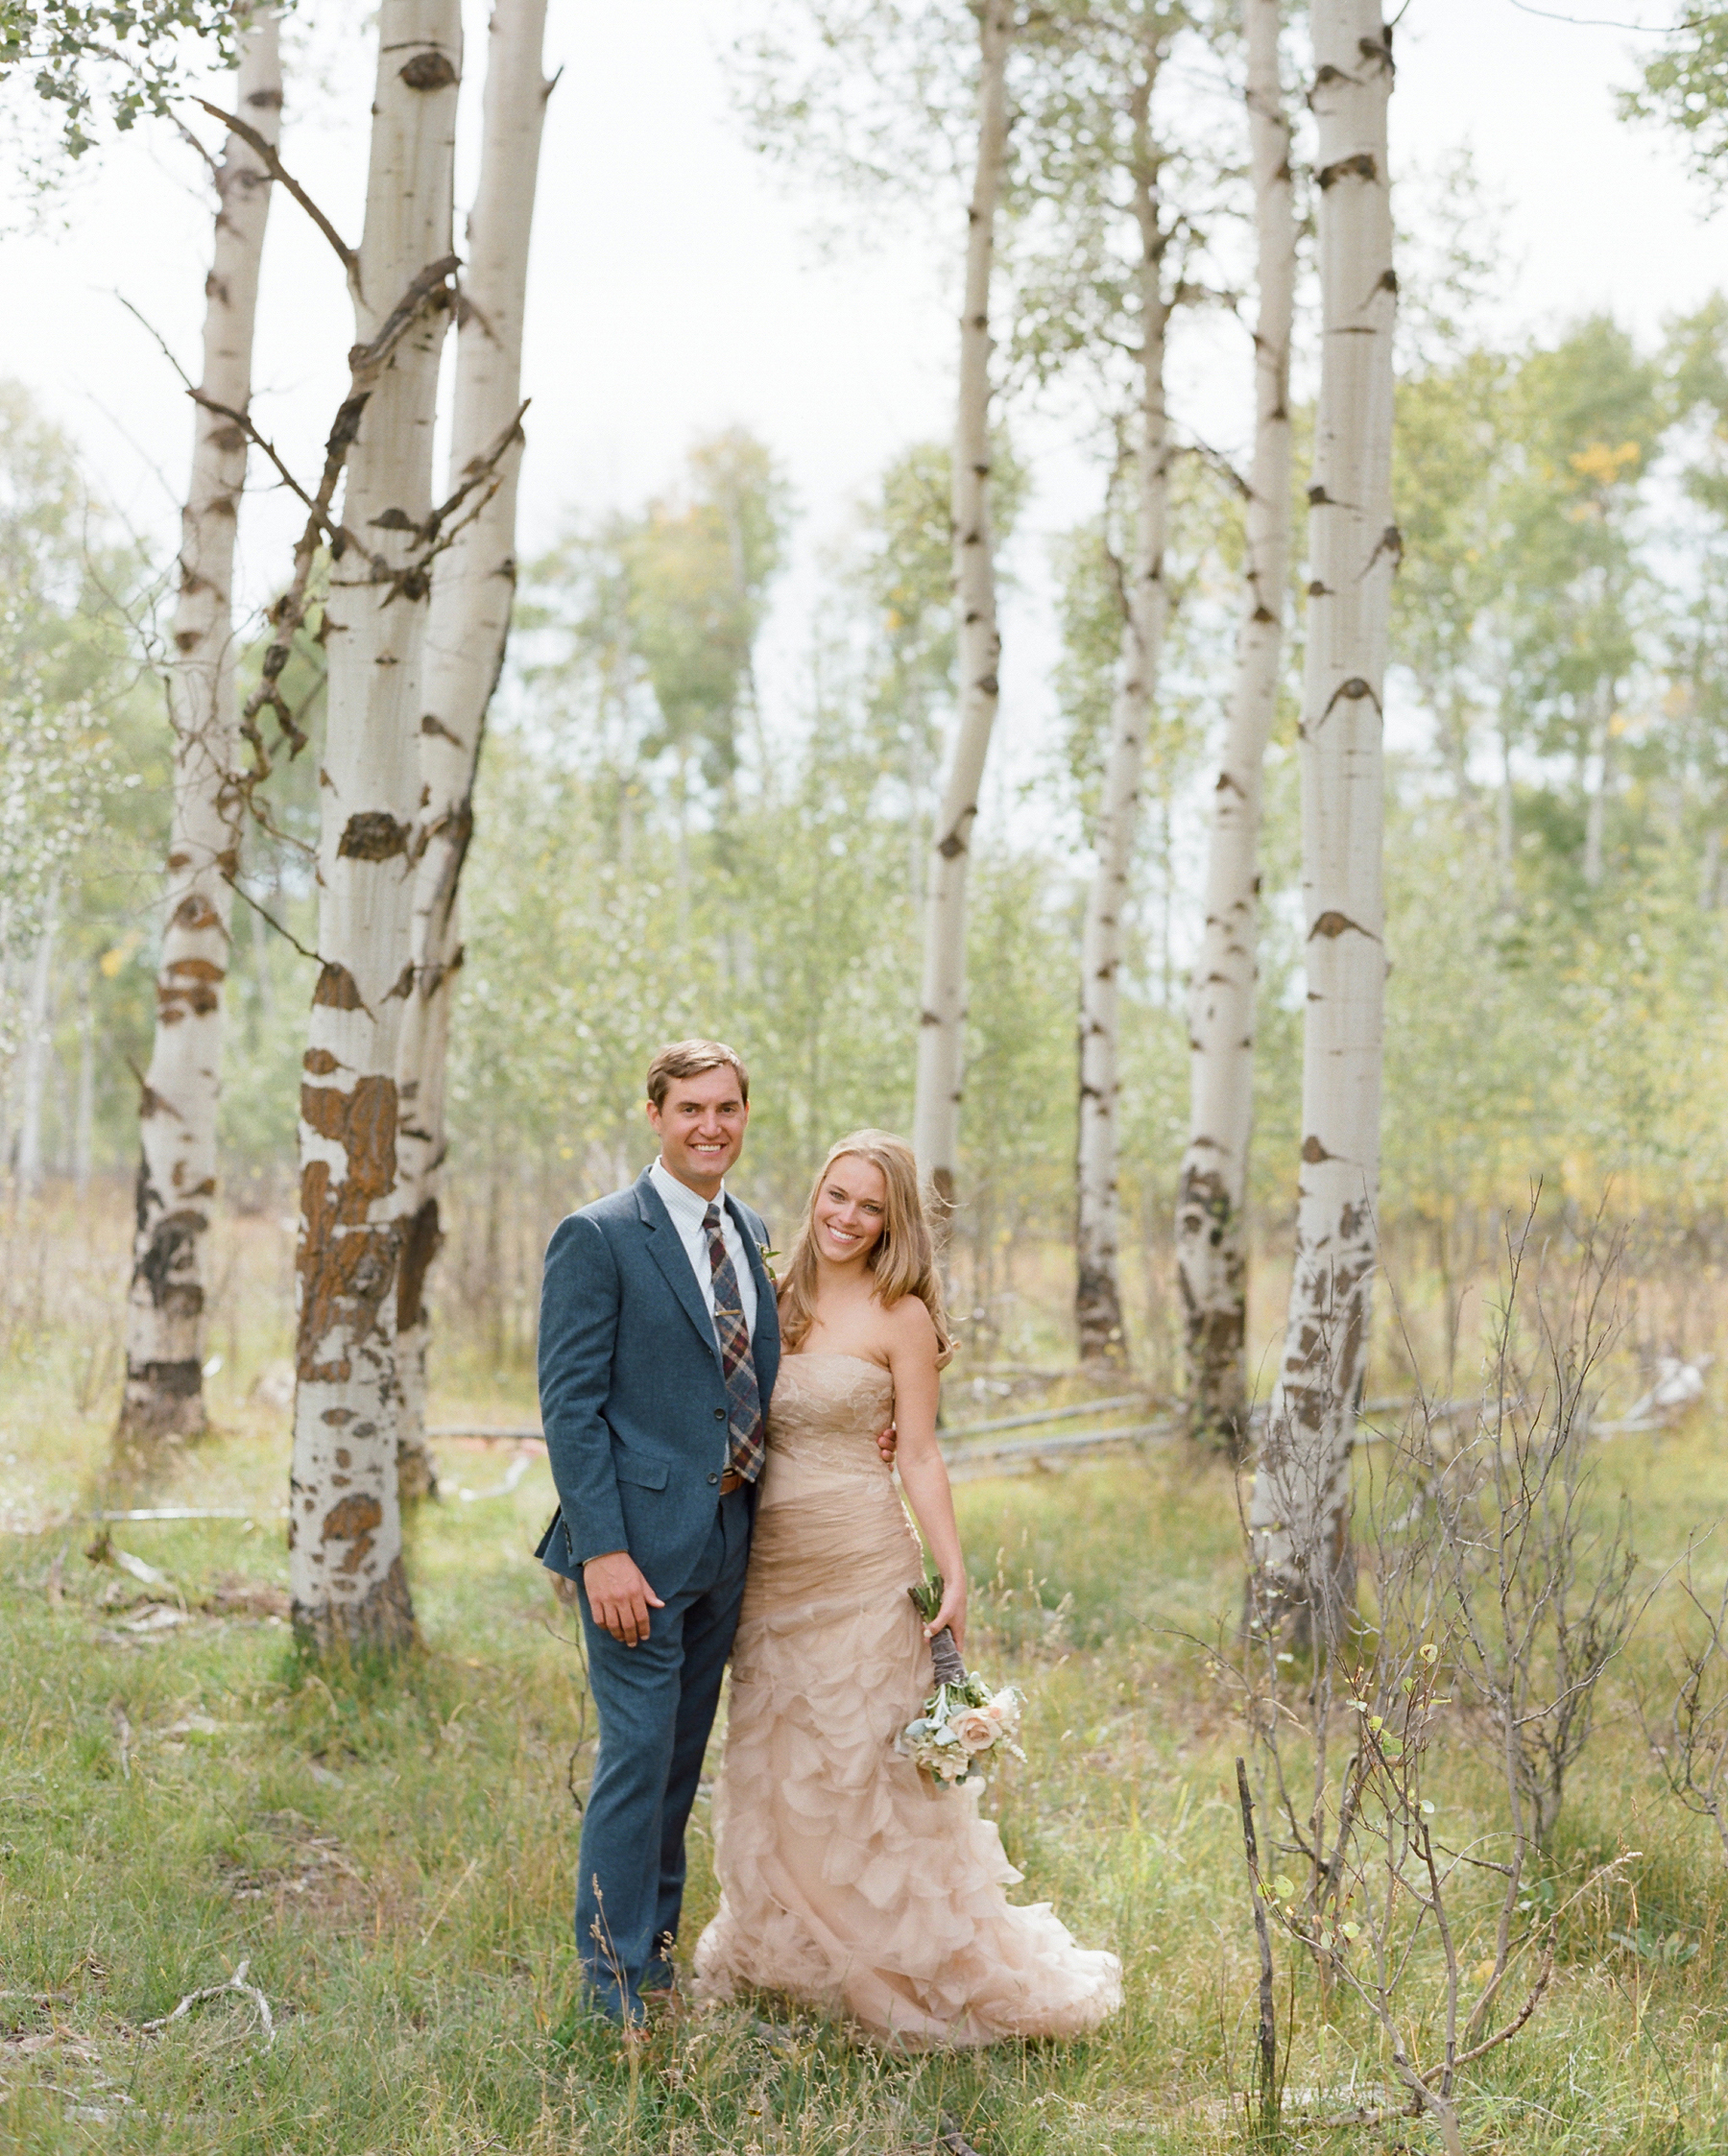 callie-eric-wedding-couple-154-s112113-0815.jpg